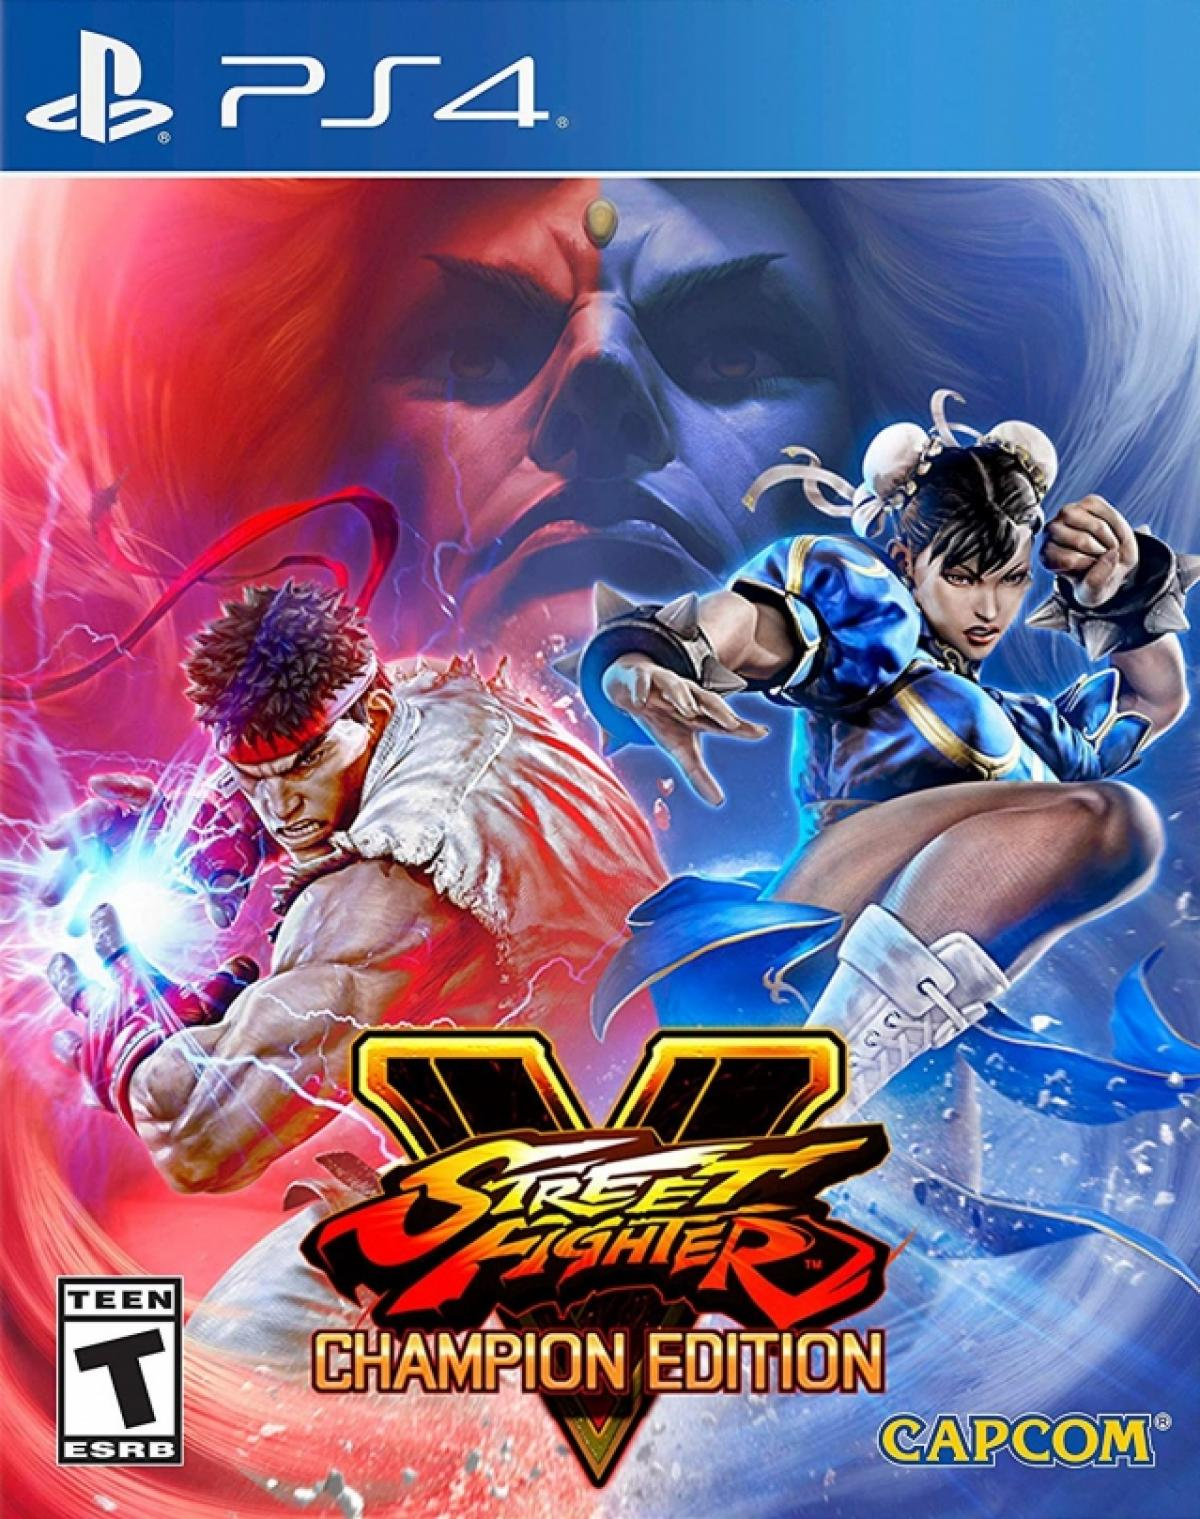 Street Fighter V - Champion Edition [PS4] 5.05 / 6.72 / 7.02 [EUR] (2020) [Английский] (v3.03)